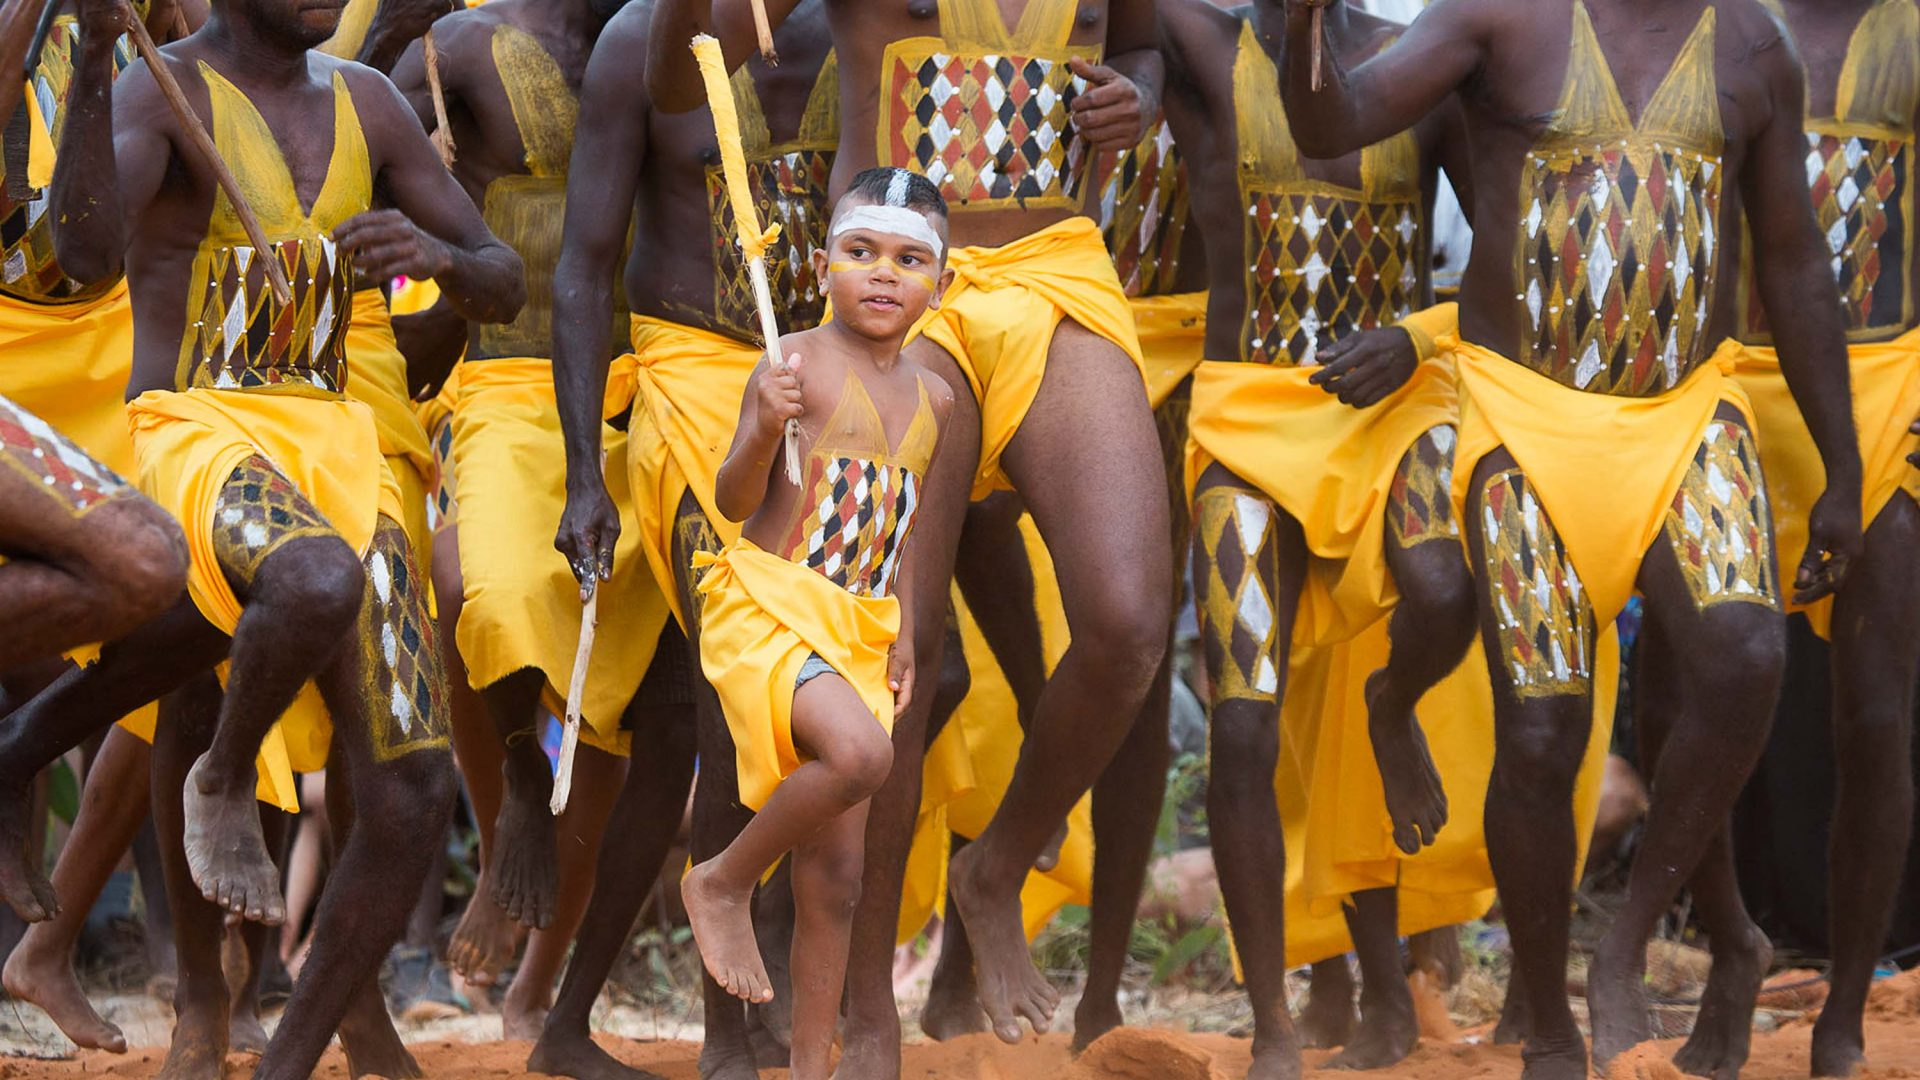 Looking for an education on Indigenous Australia? Start with these festivals